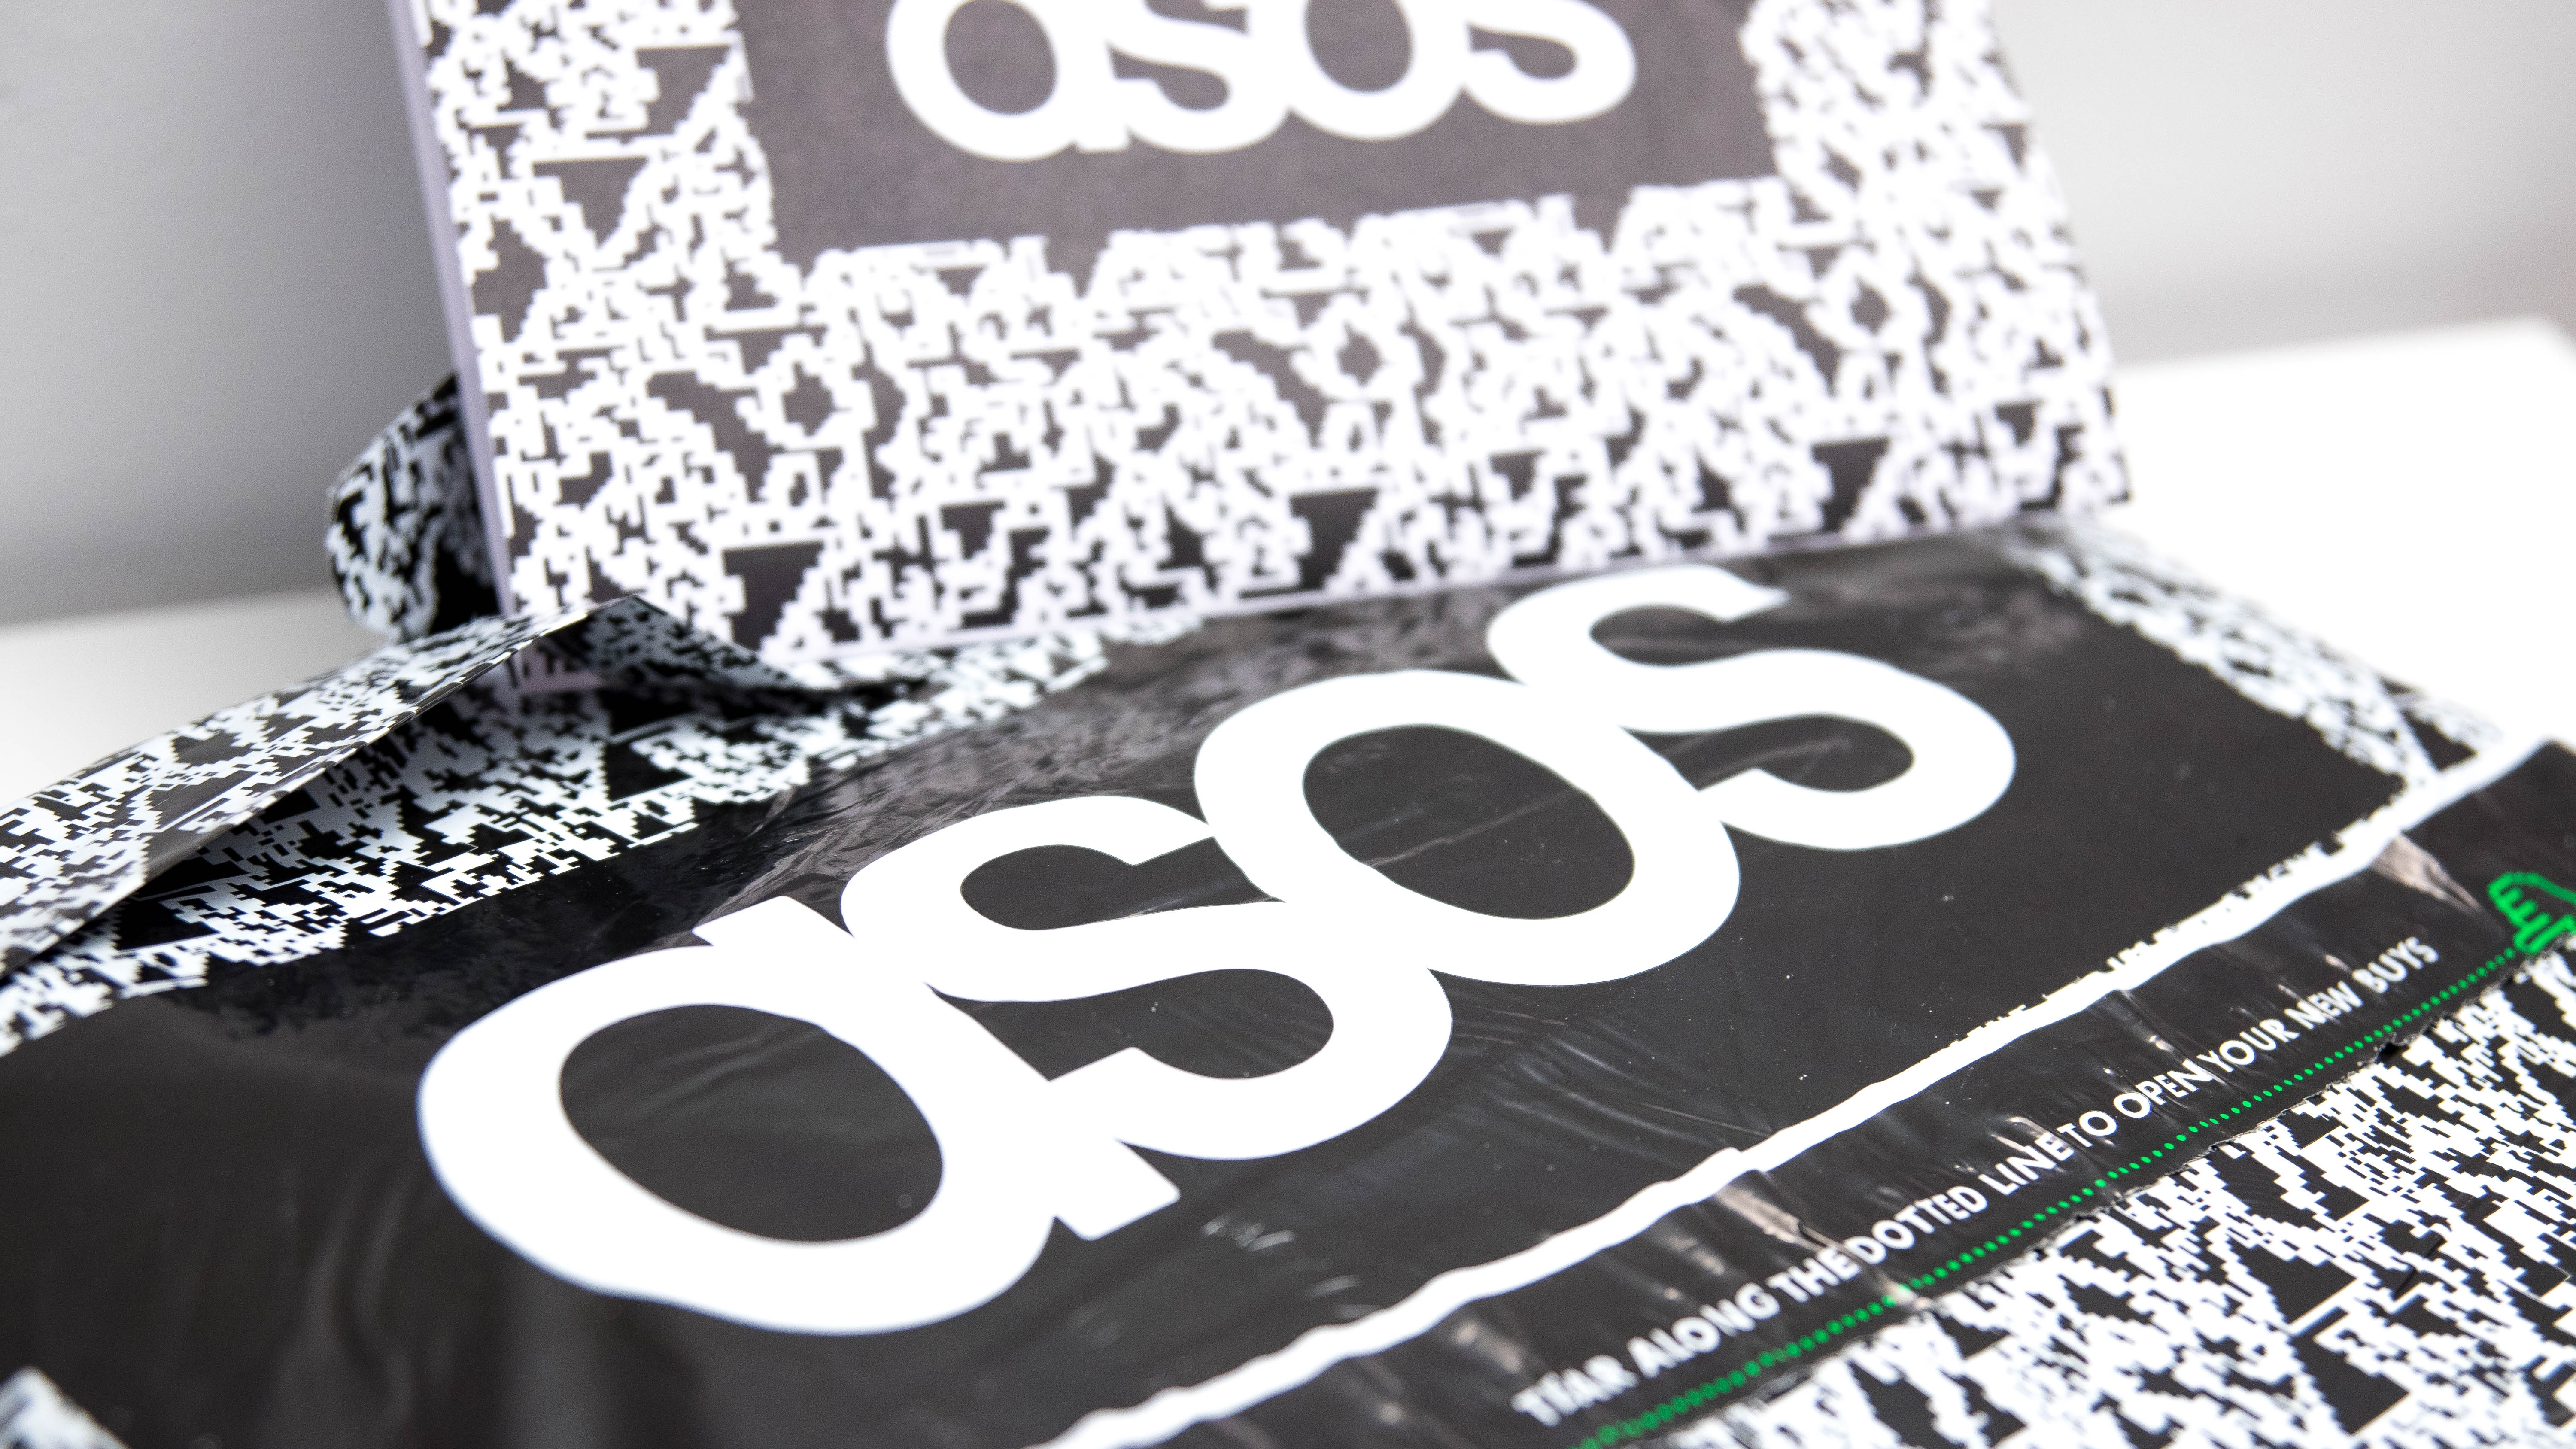 ed57178ab56ee Asos cracking down on 'wear and return' customers – your rights